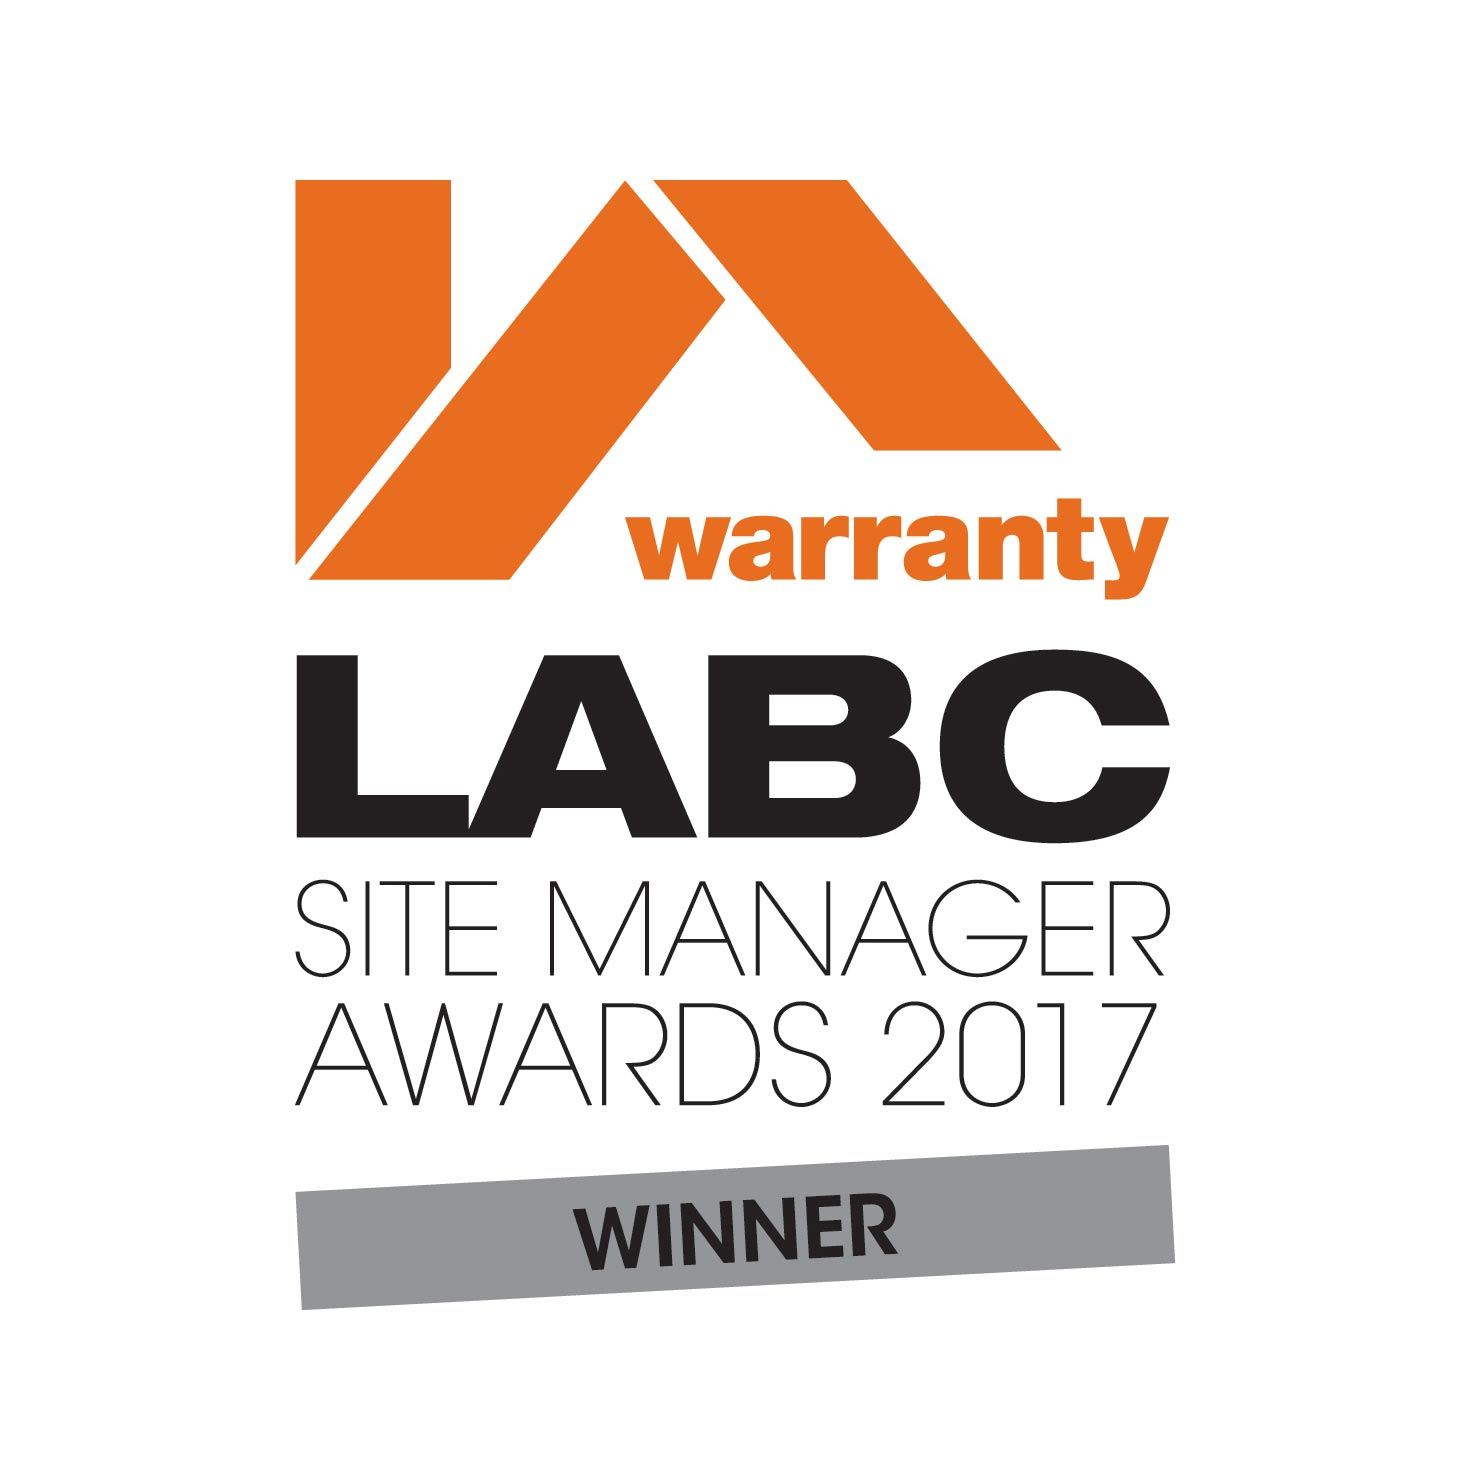 LABC Site Manager Awards 2017